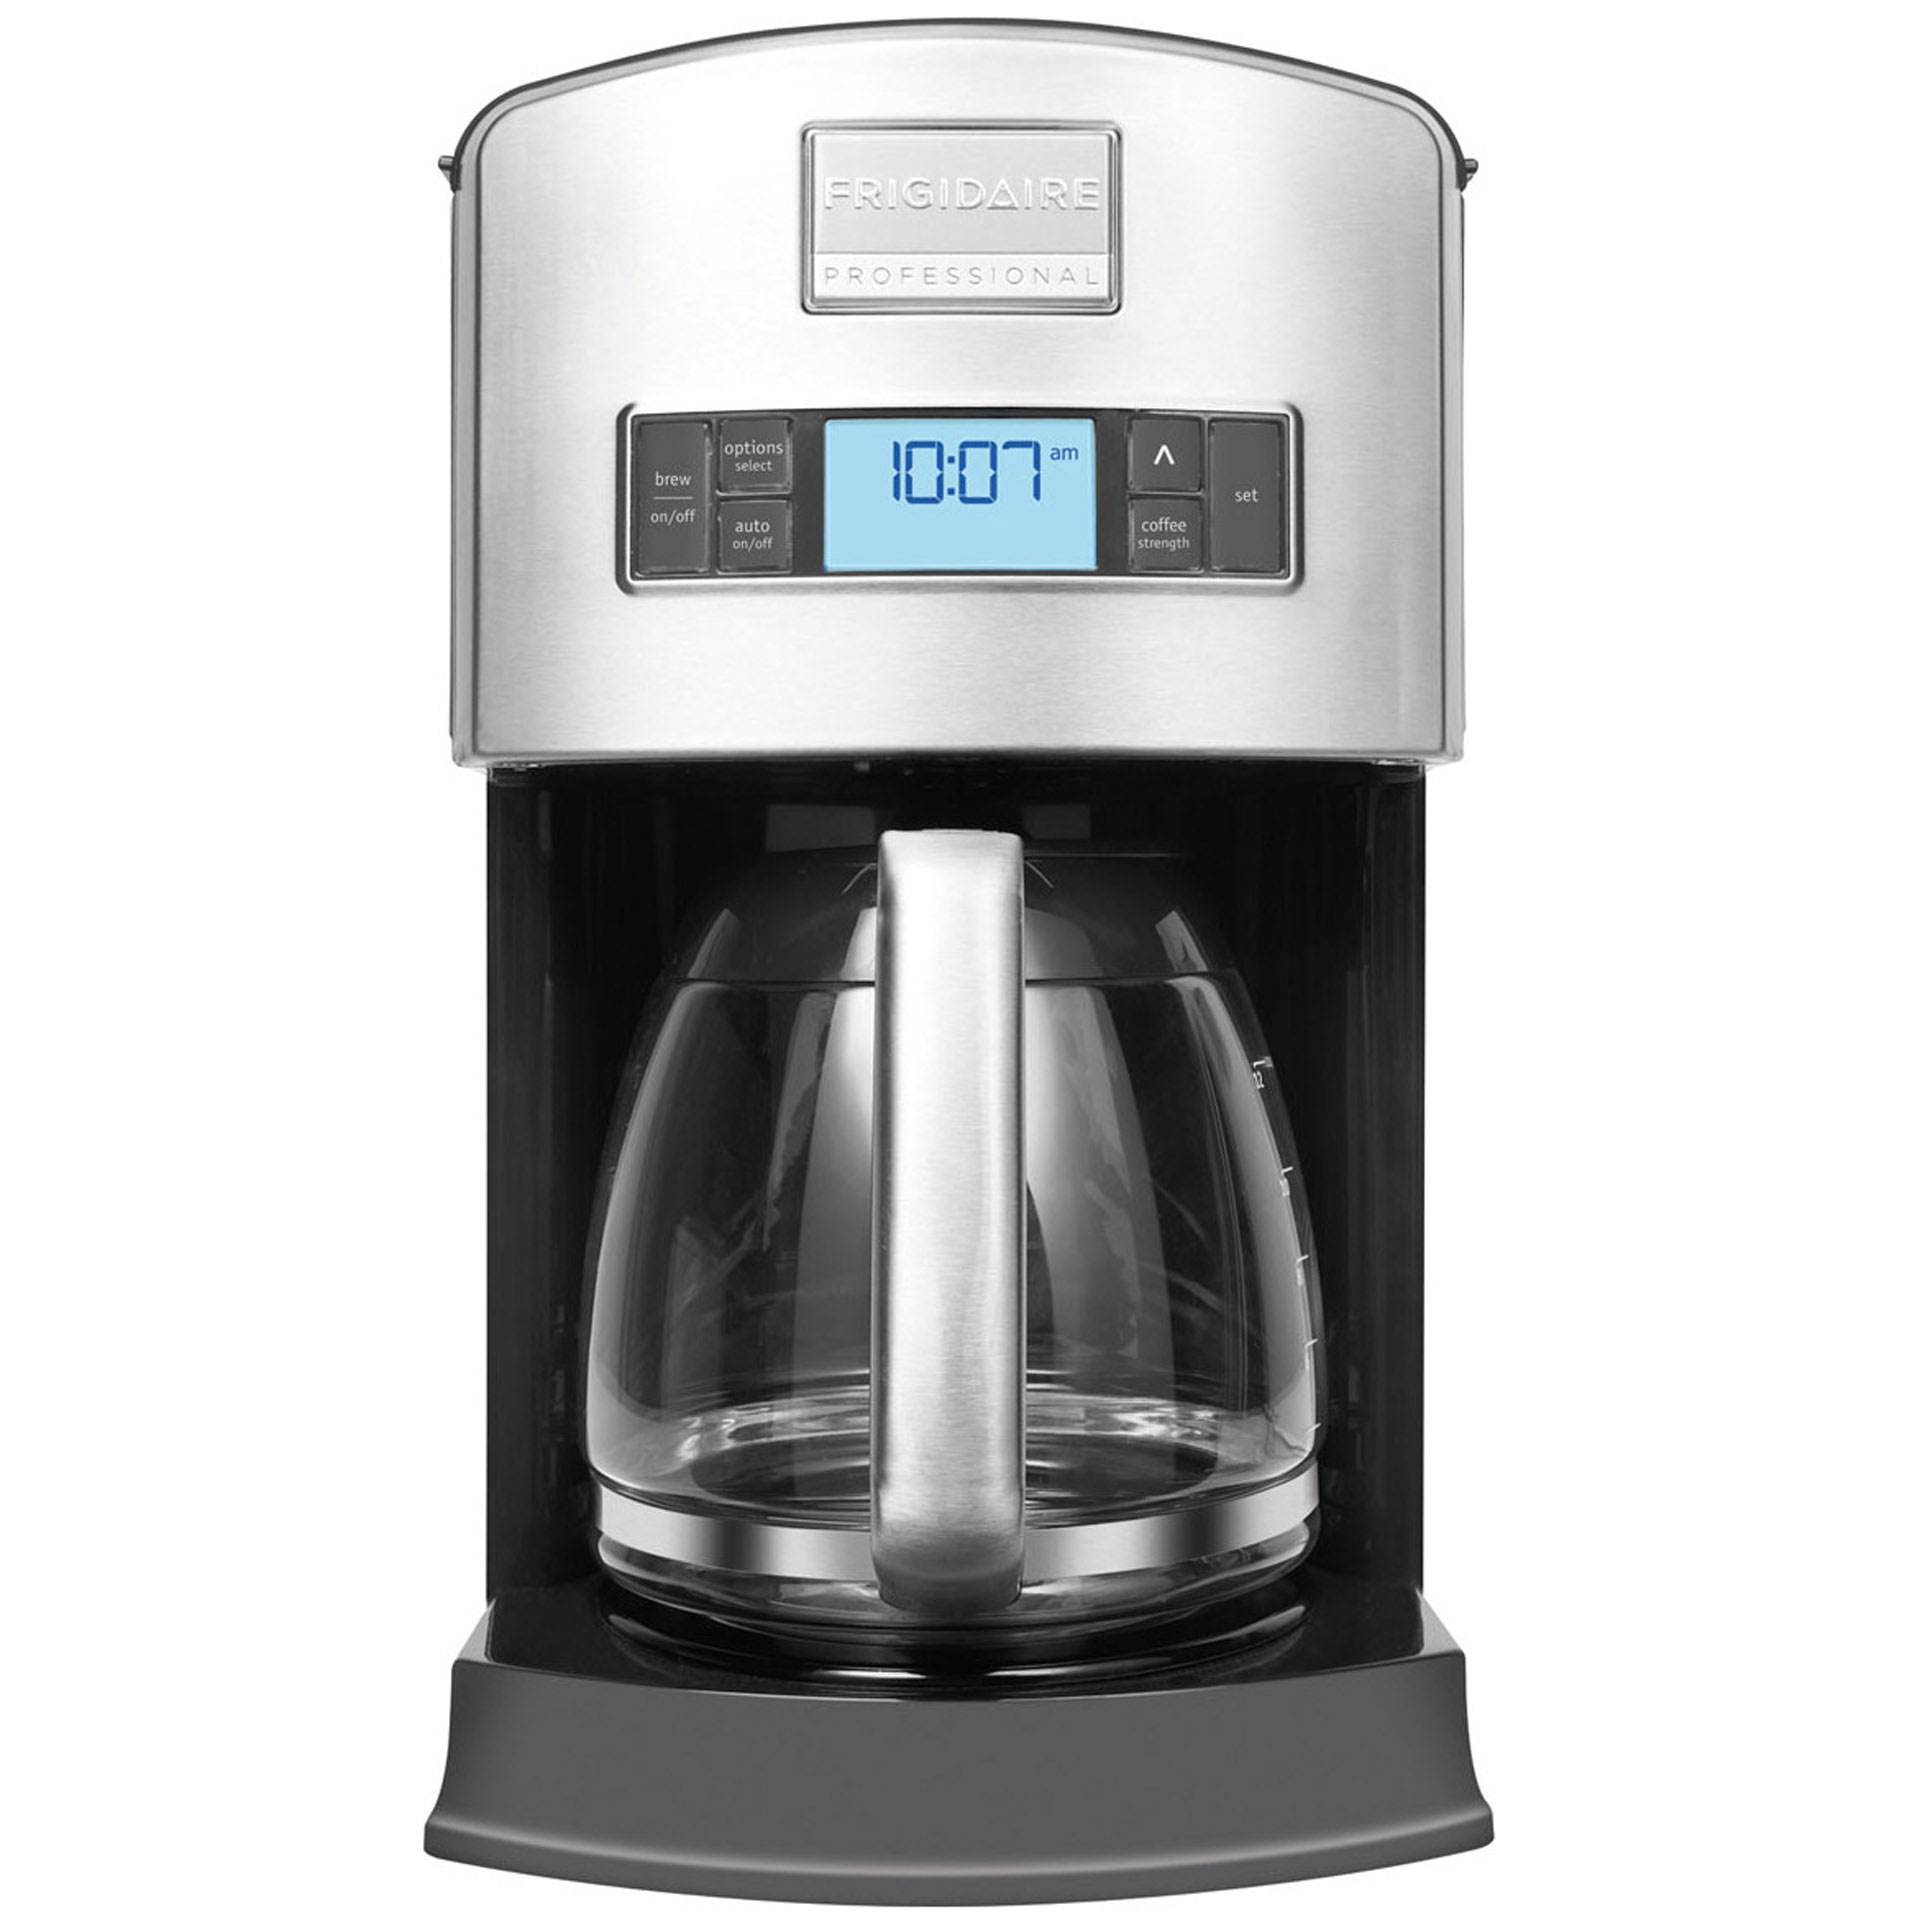 Frigidaire Coffee Maker Water Filter : Frigidaire Professional 12-Cup Drip Coffee Maker #FPDC12D7MS Review